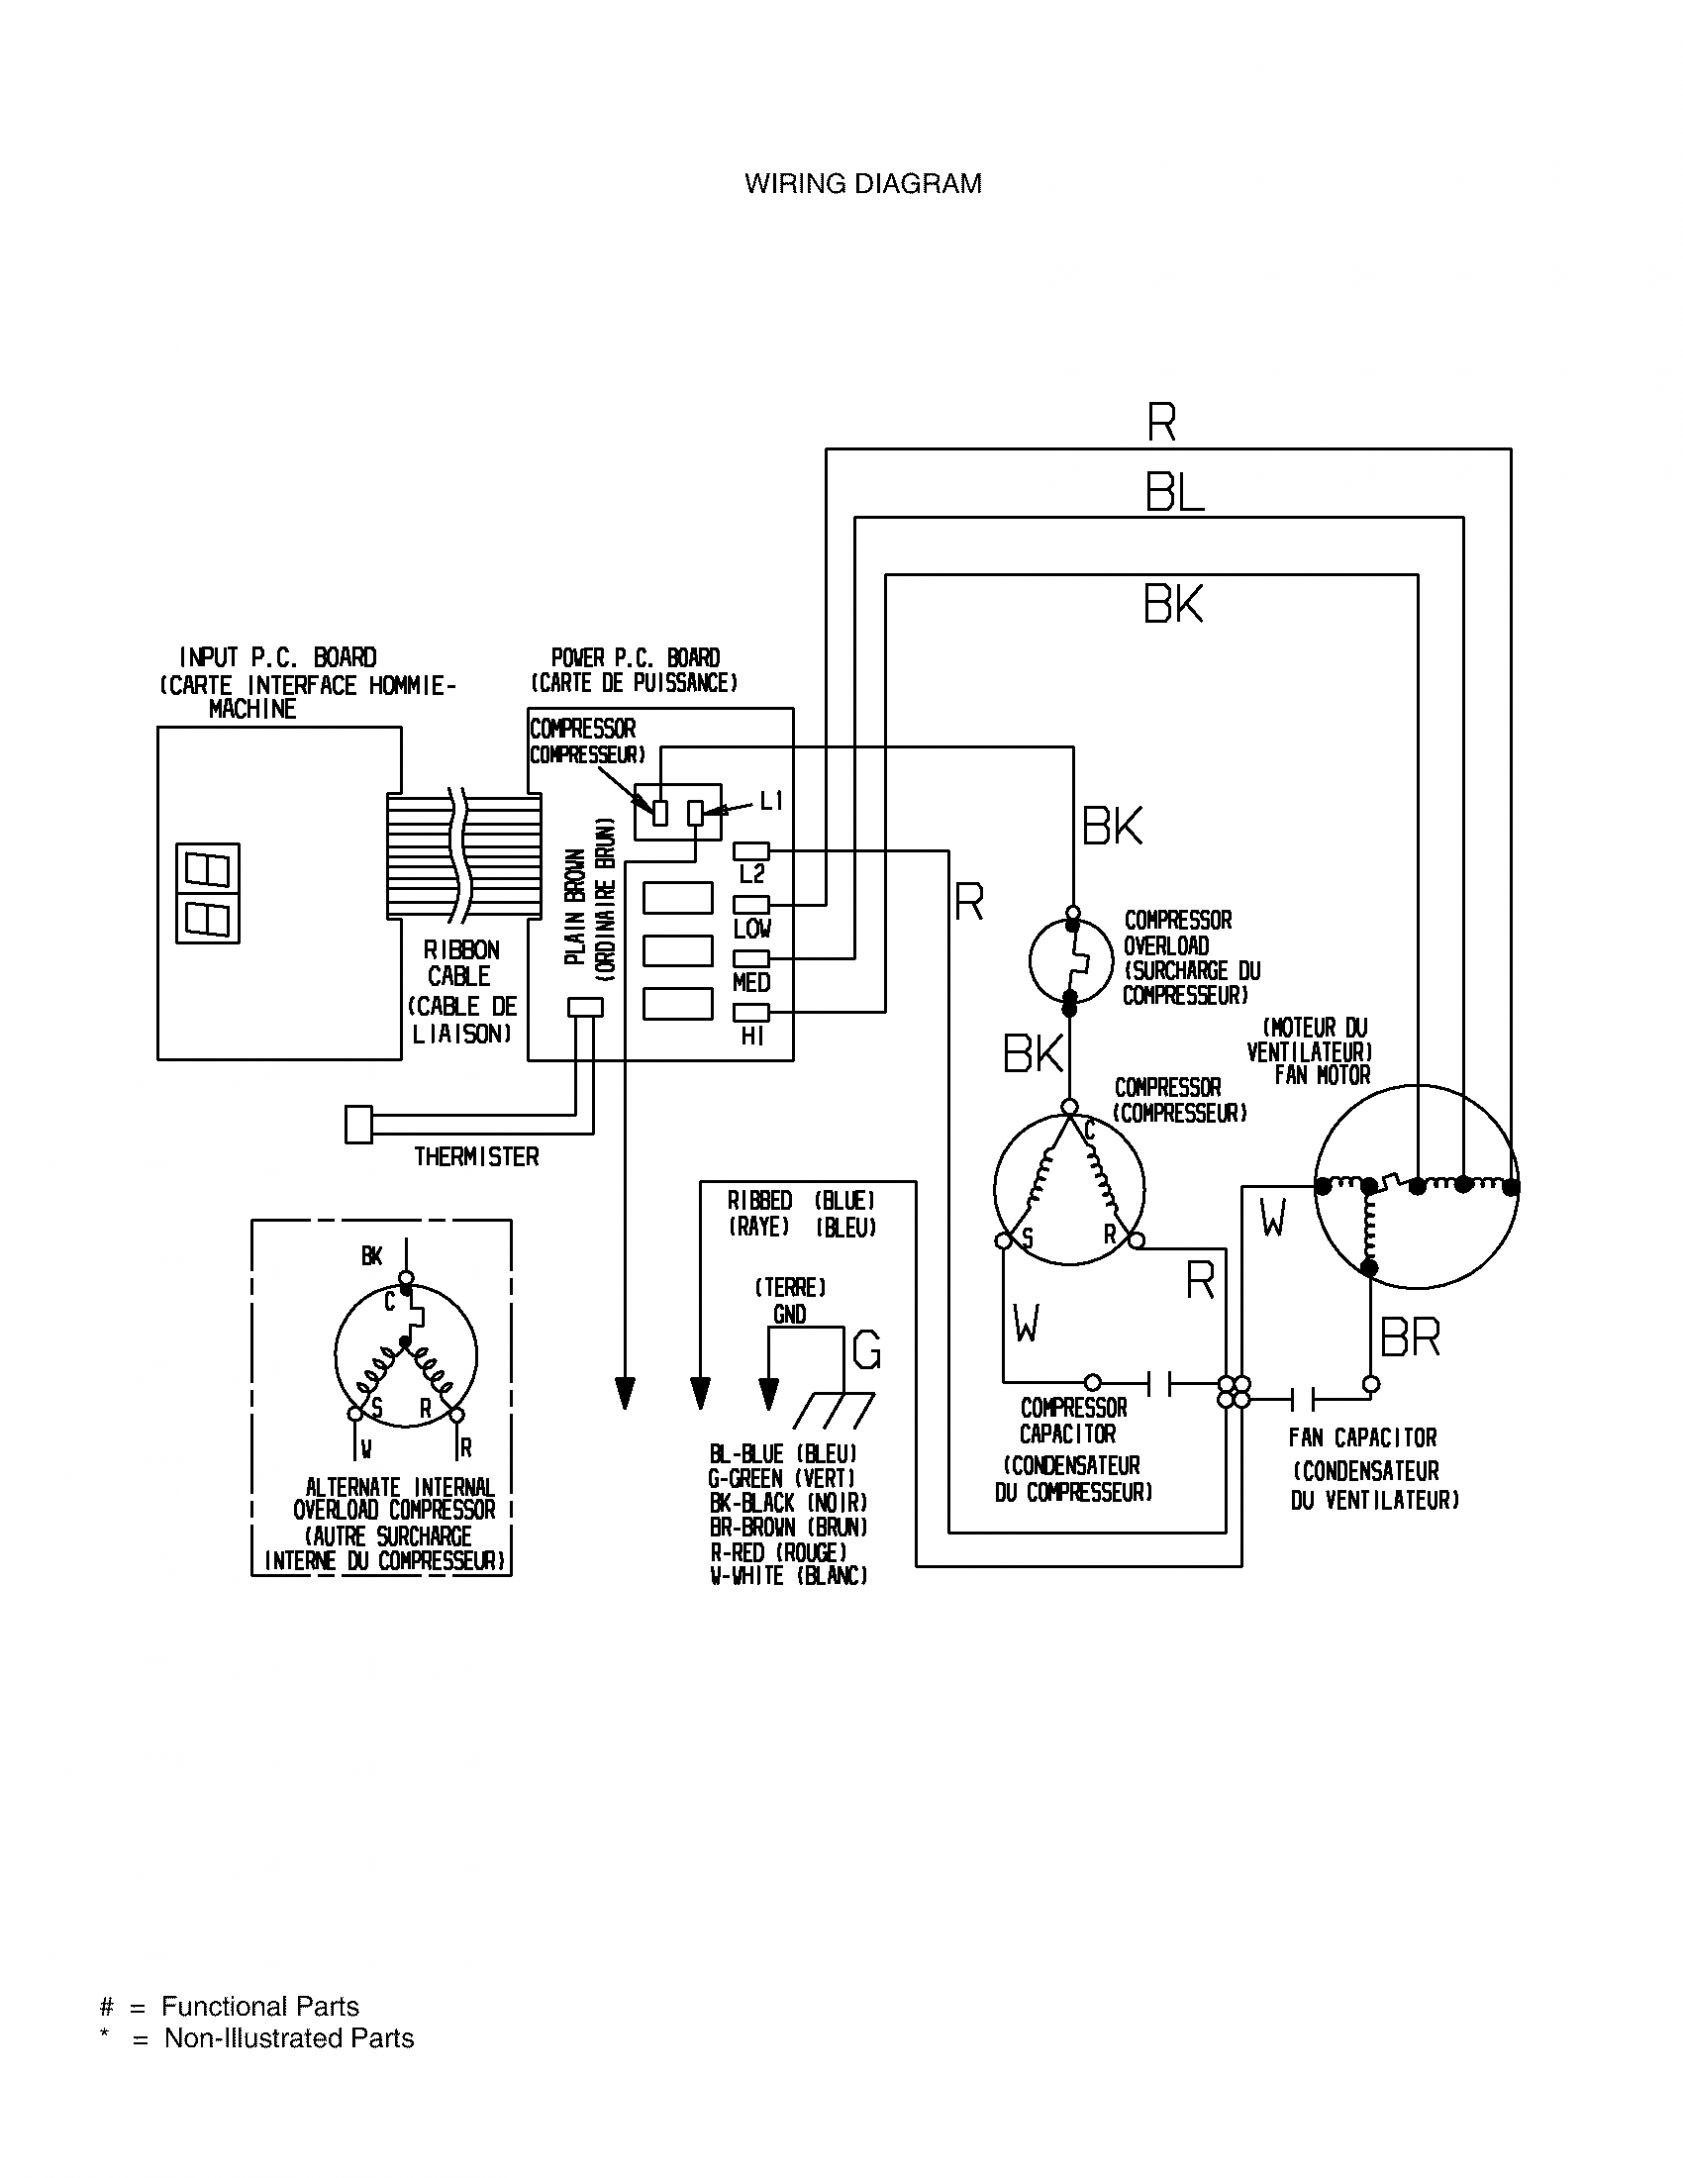 hight resolution of residential air conditioner wiring diagram wiring diagrams for hvac valid tower ac wiring diagram inspirationa